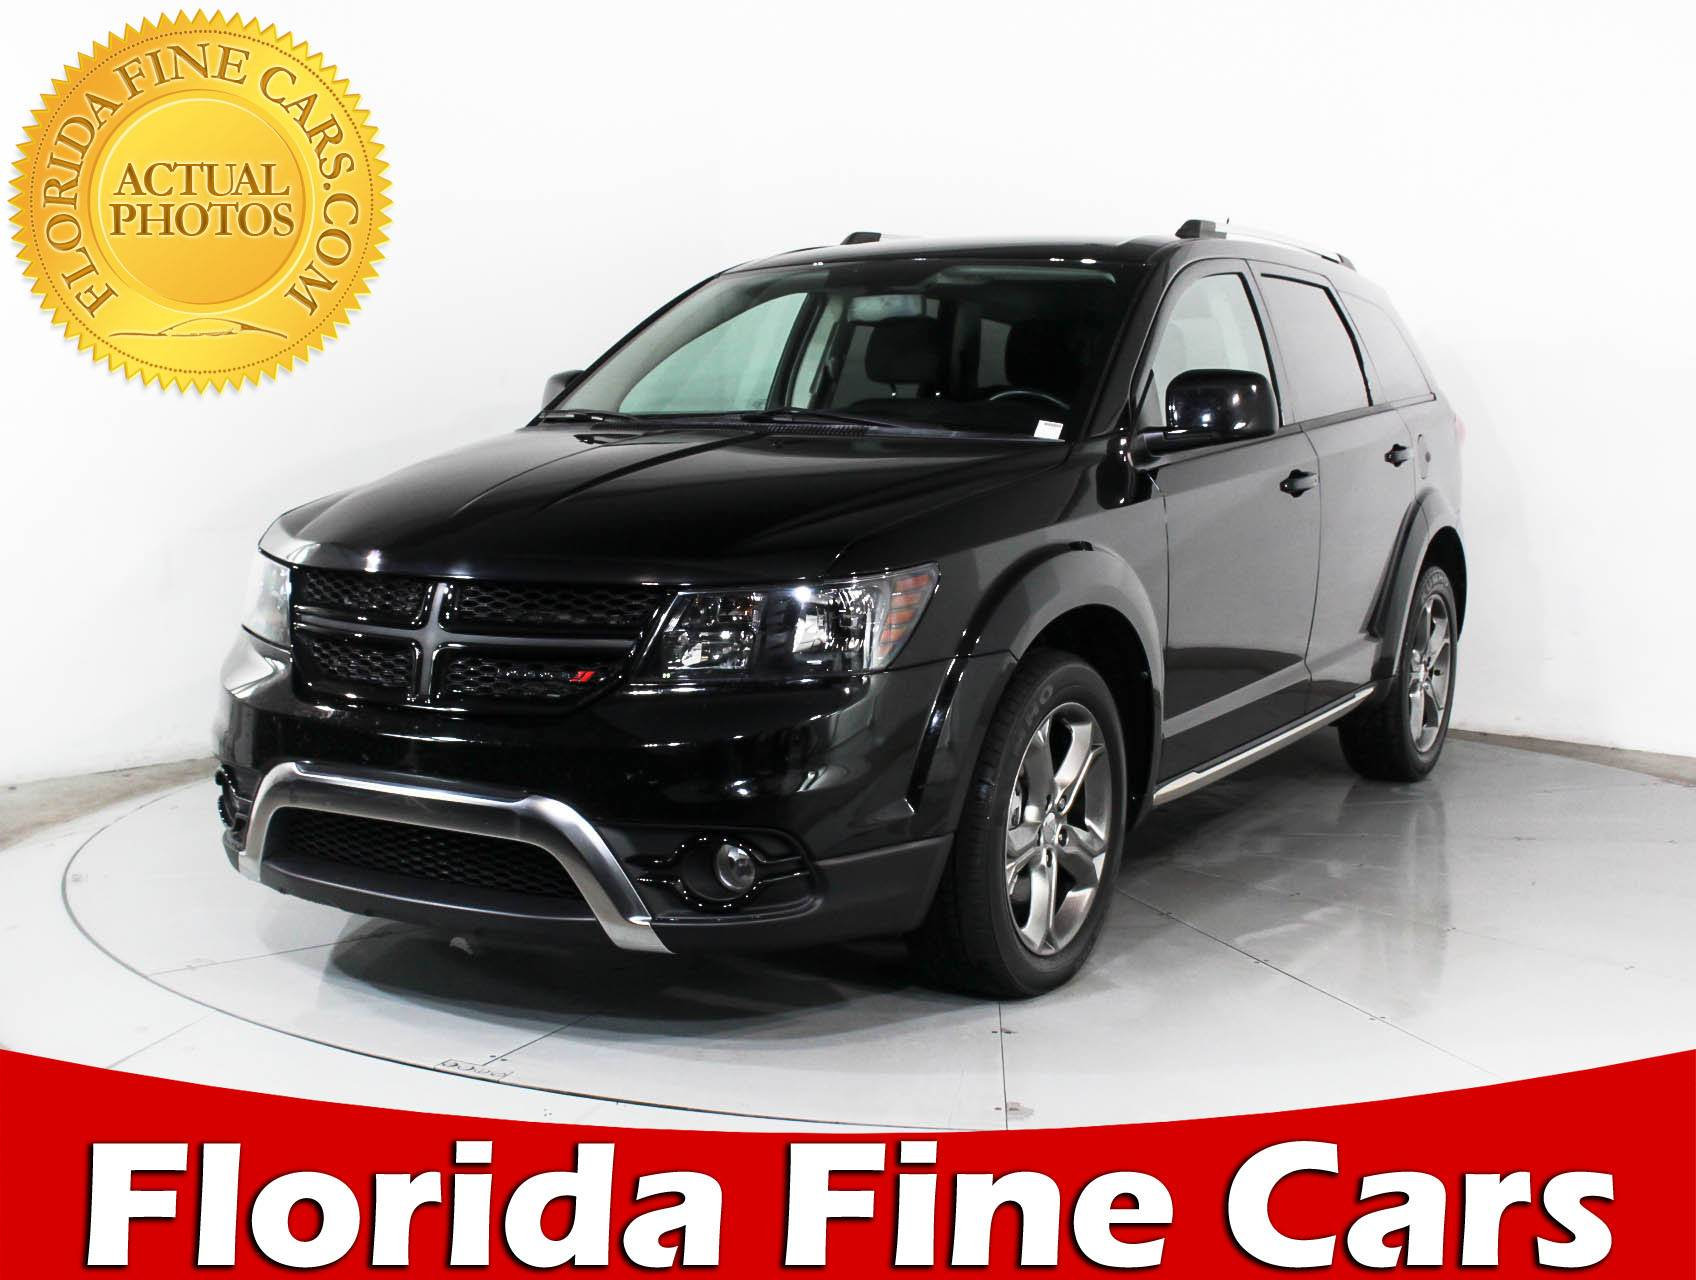 Used 2016 DODGE JOURNEY CROSSROAD SUV for sale in HOLLYWOOD FL